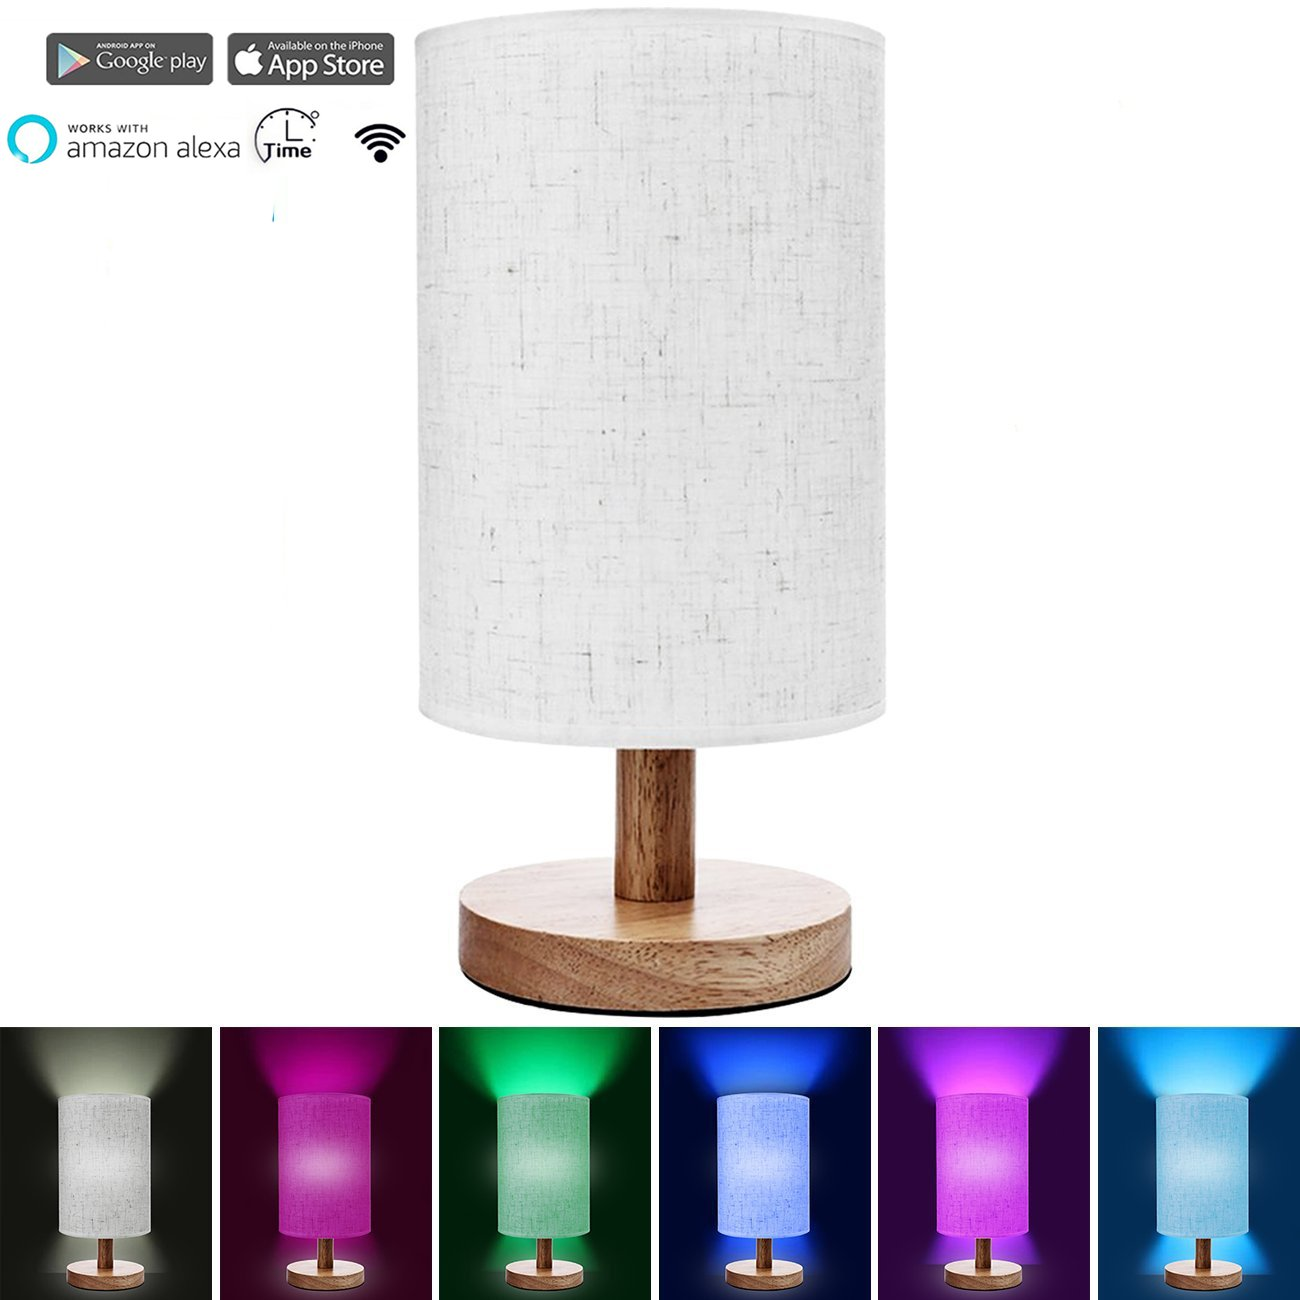 Smart Alexa Lamp Wood Table Lamp Voice Control Lamp, Dimmable Multicolored Color Changing LED Light, with Fabric Shade and Solid Wood, Smartphone Control Compatible with Alexa (B)